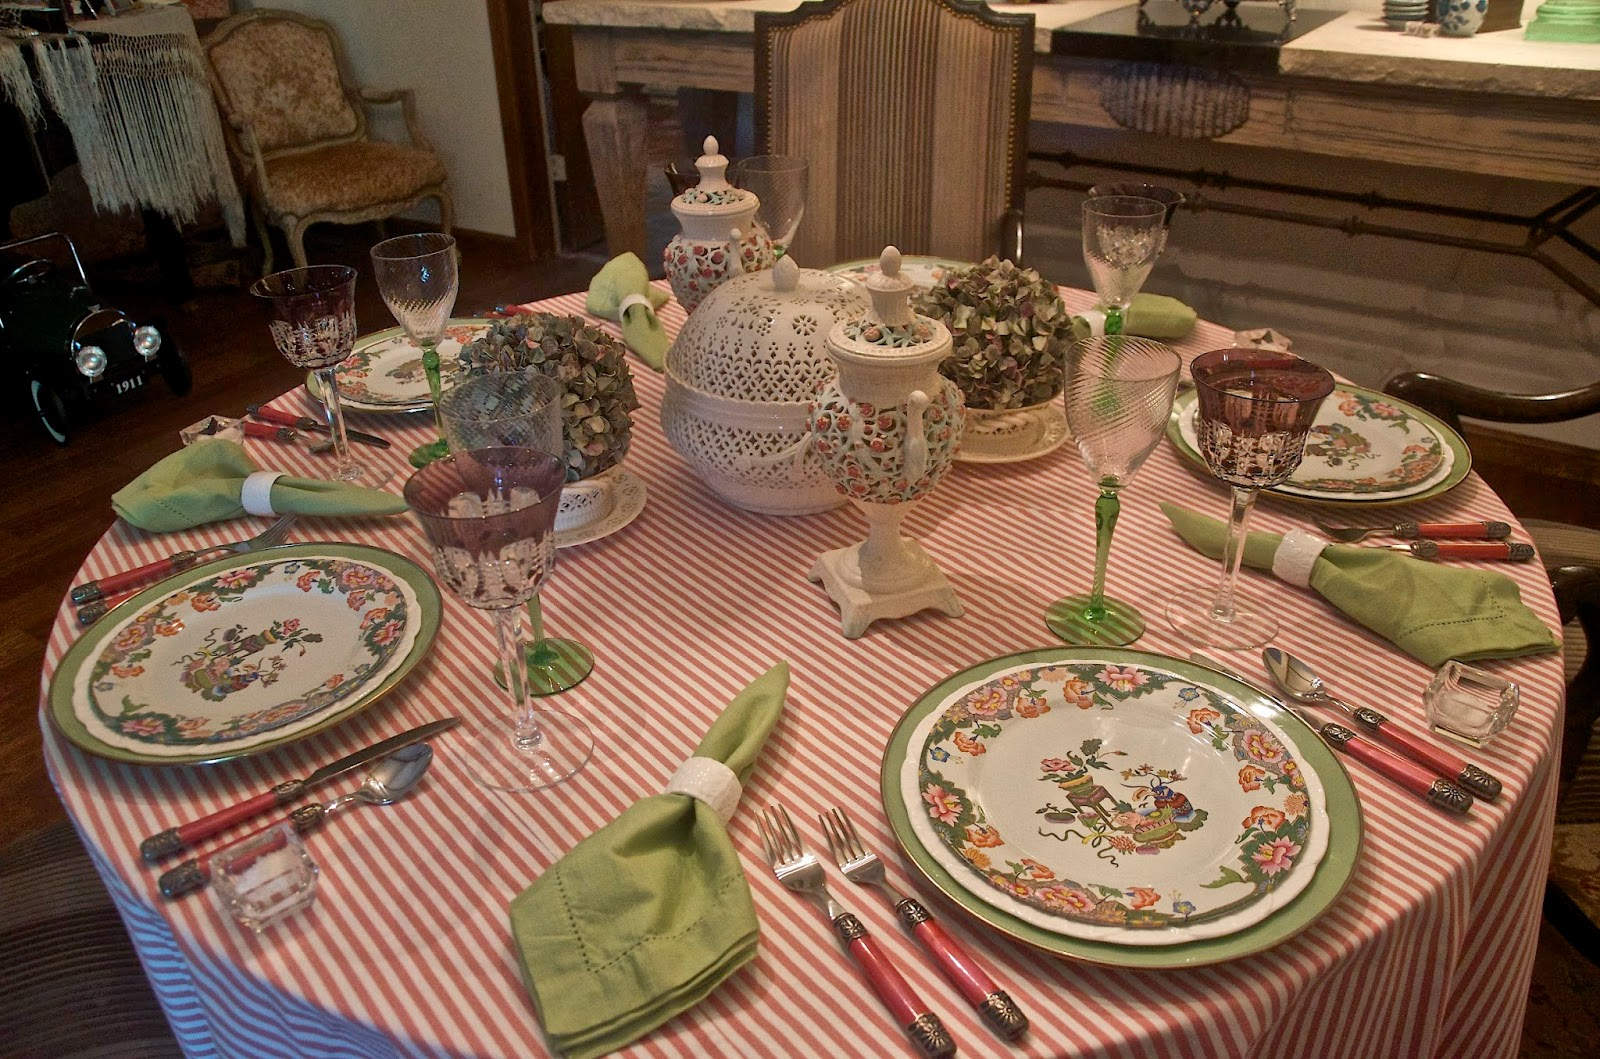 After choosing my dinnerware I started the process of selecting a tablecloth. No matter how many cloths I pulled for consideration I kept going back to ... & Entertaining Women: May 2014